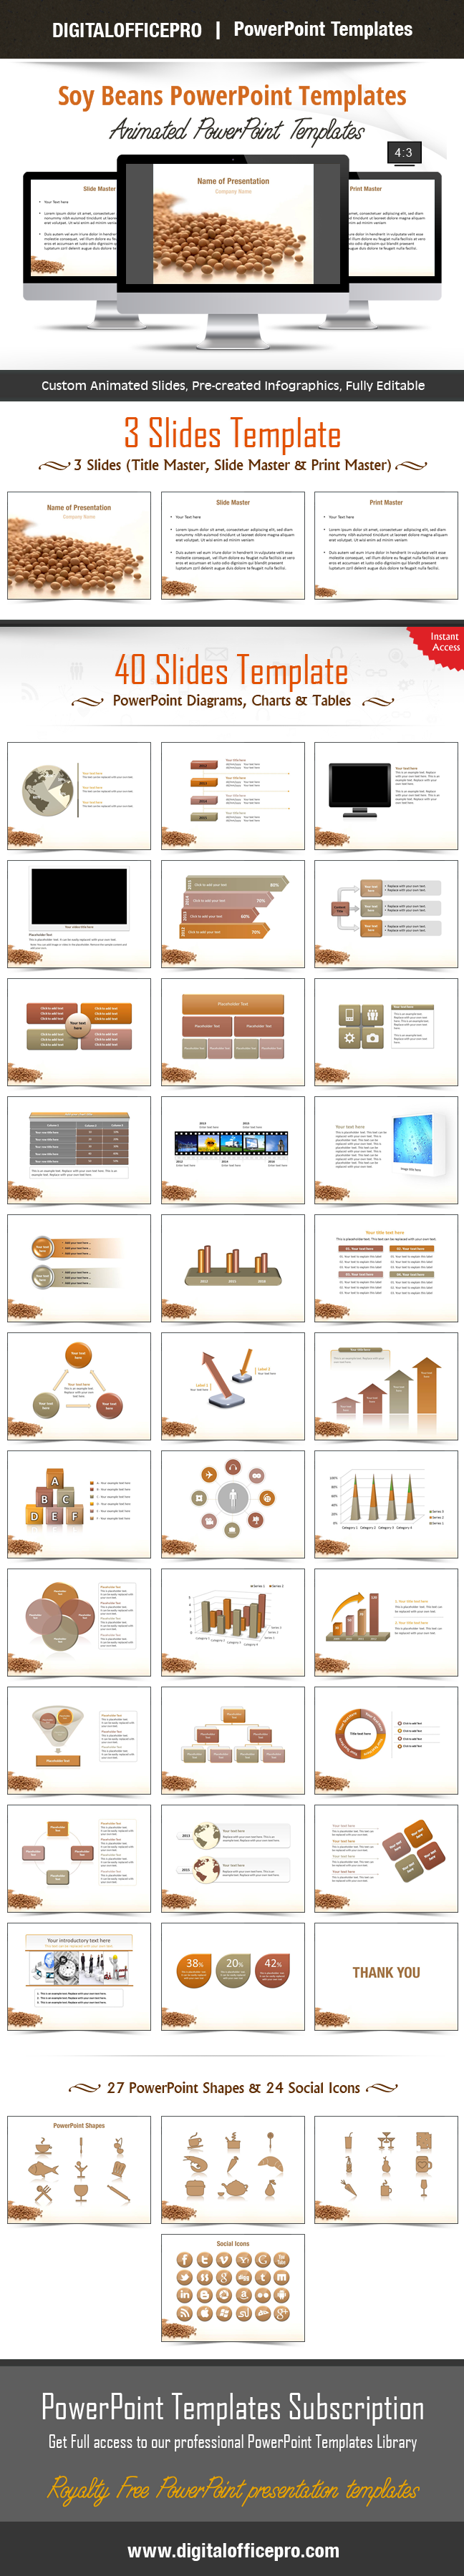 Impress and Engage your audience with Soy Beans PowerPoint Template and Soy Beans PowerPoint Backgrounds from DigitalOfficePro. Each template comes with a set of PowerPoint Diagrams, Charts & Shapes and are available for instant download.